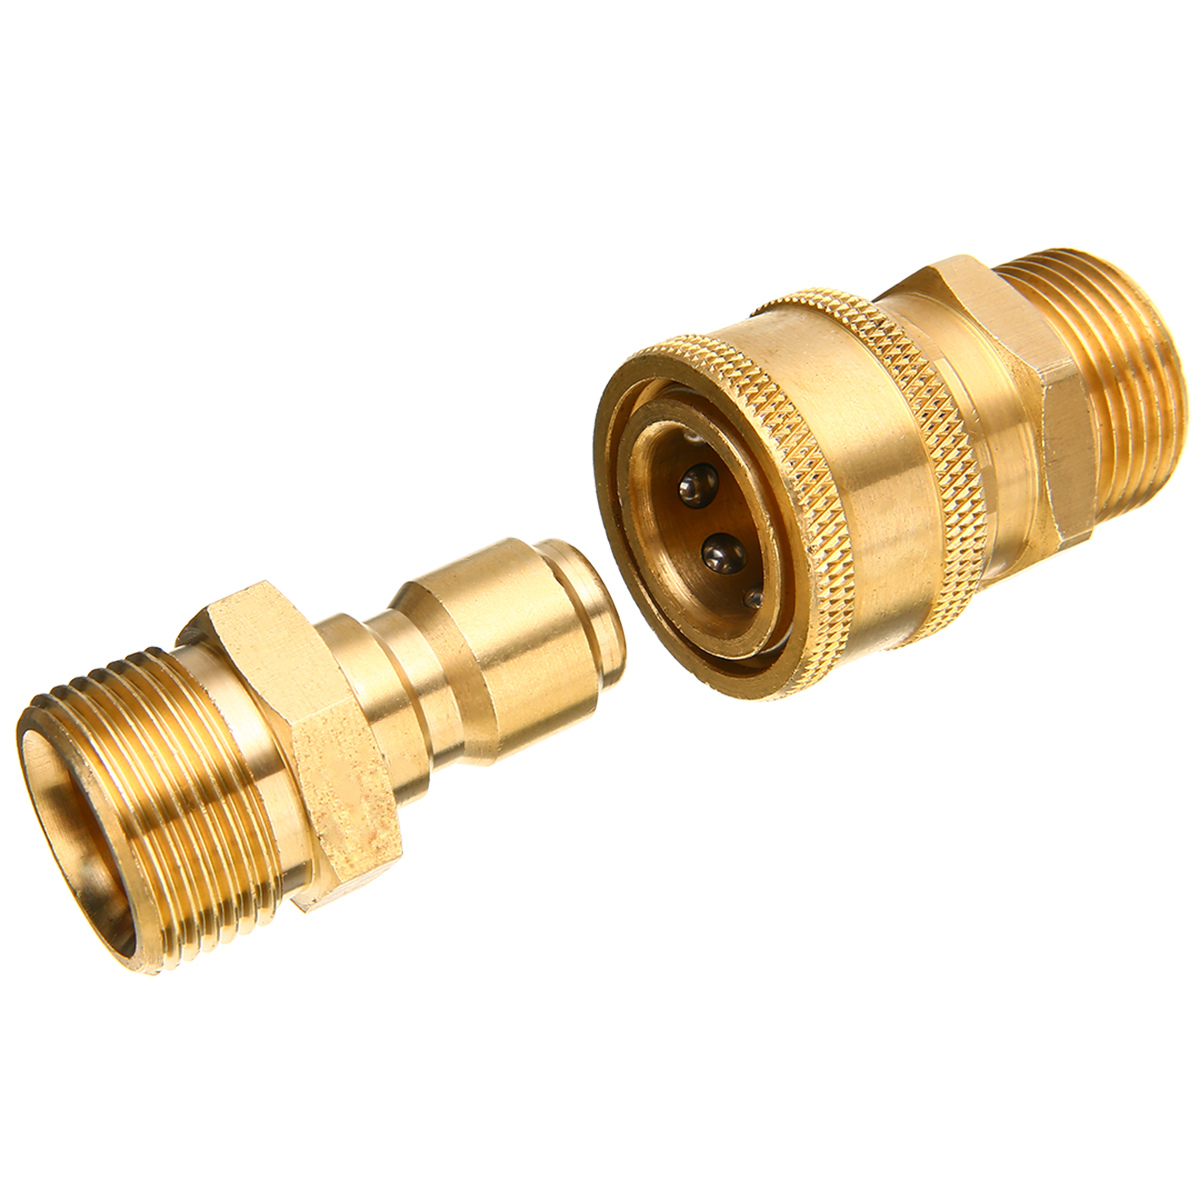 1 Pair Brass M22 Quick Release Pressure Washer Adapter Connector Coupling 14.8MM For Garden Joints Agricultural Irrigation